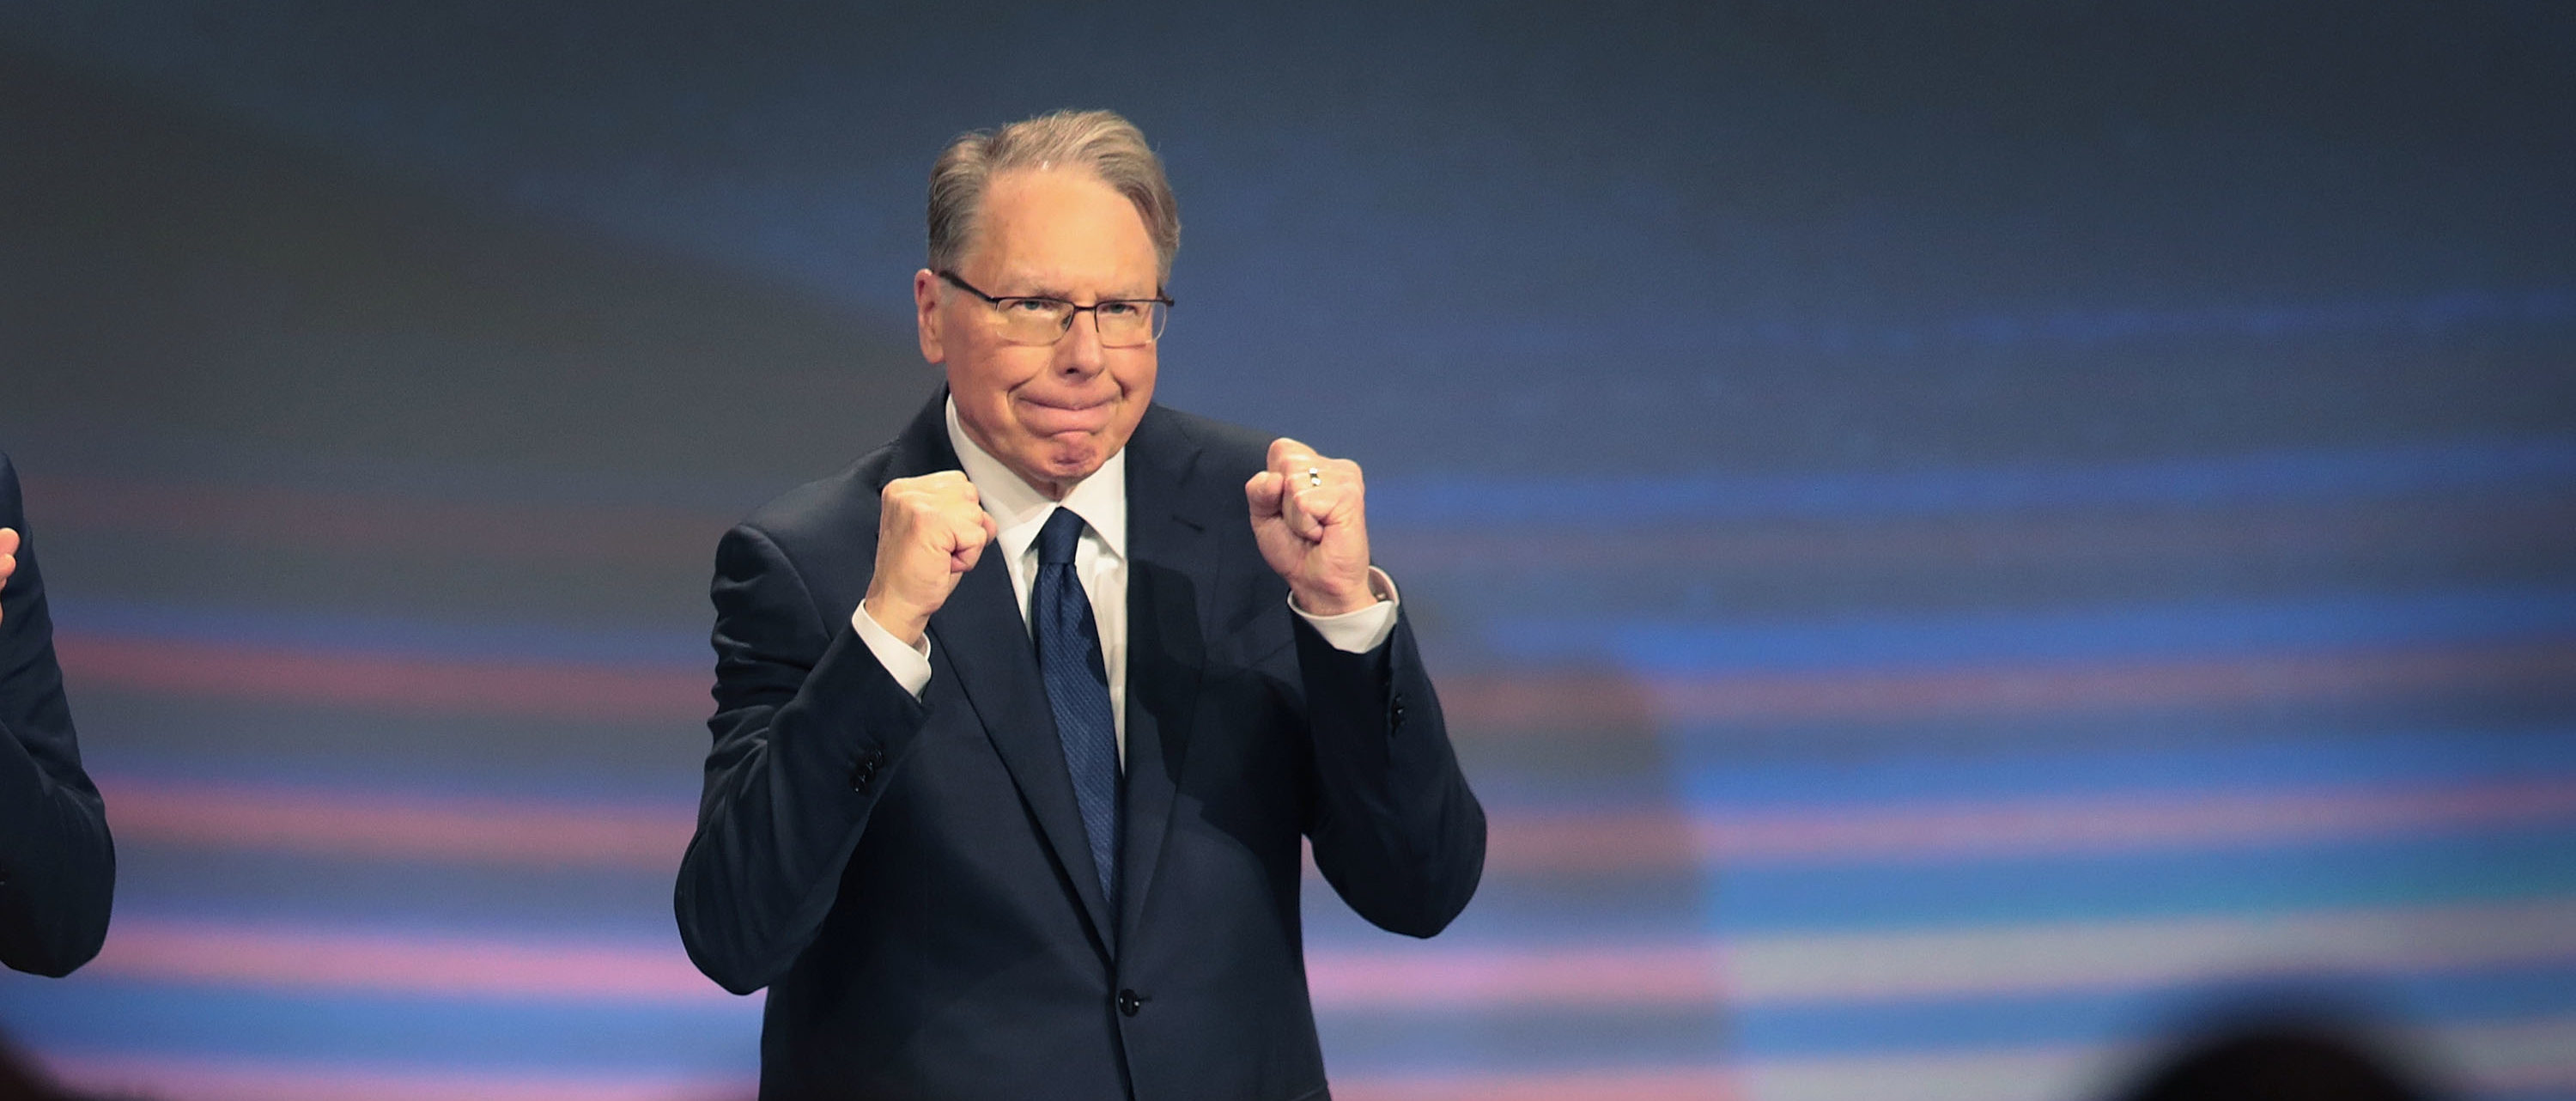 INDIANAPOLIS, INDIANA - APRIL 27: Wayne LaPierre, NRA vice president and CEO attends the NRA annual meeting of members at the 148th NRA Annual Meetings & Exhibits on April 27, 2019 in Indianapolis, Indiana. A statement was read at the meeting announcing that NRA president Oliver North, whose seat at the head table remained empty at the event, would not serve another term. There have been recent reports of tension between LaPierre and North, with North citing financial impropriety within the organization. (Photo by Scott Olson/Getty Images)